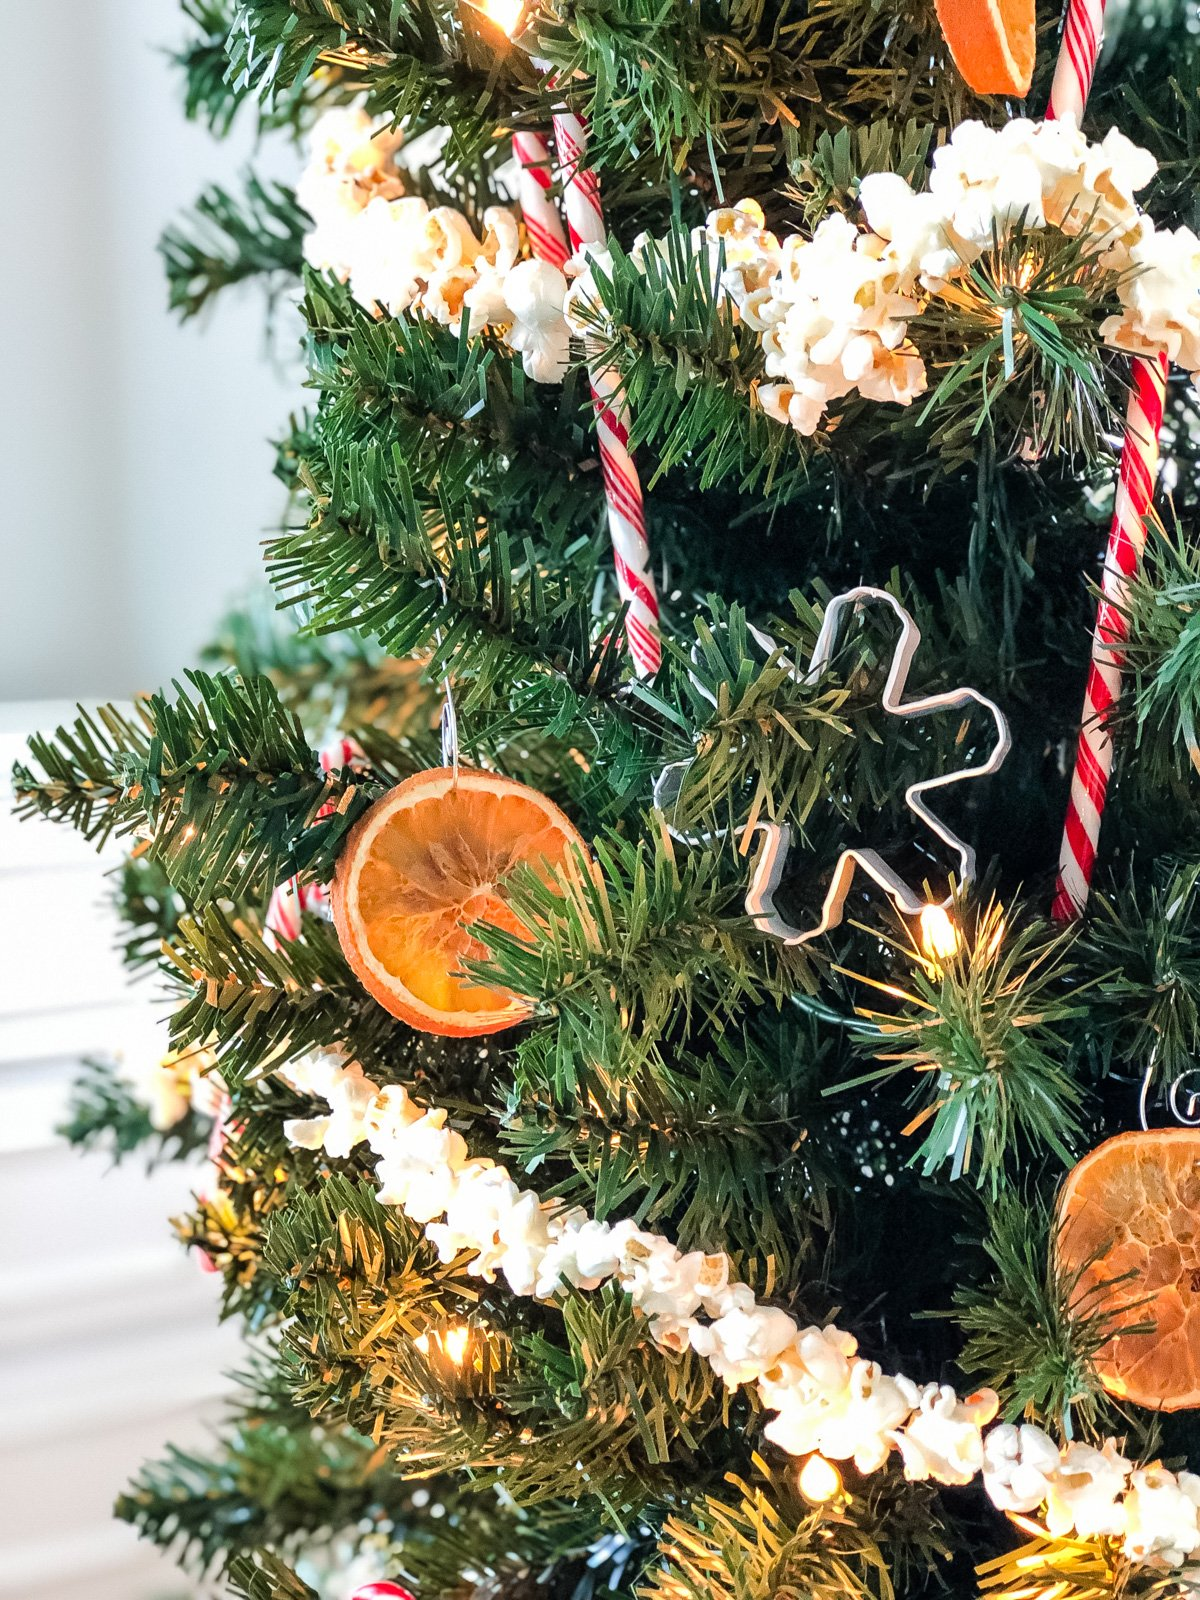 a close up of a Christmas tree decorated with candy canes, a snowflake cookie cutter, orange slices ornaments and popcorn garland